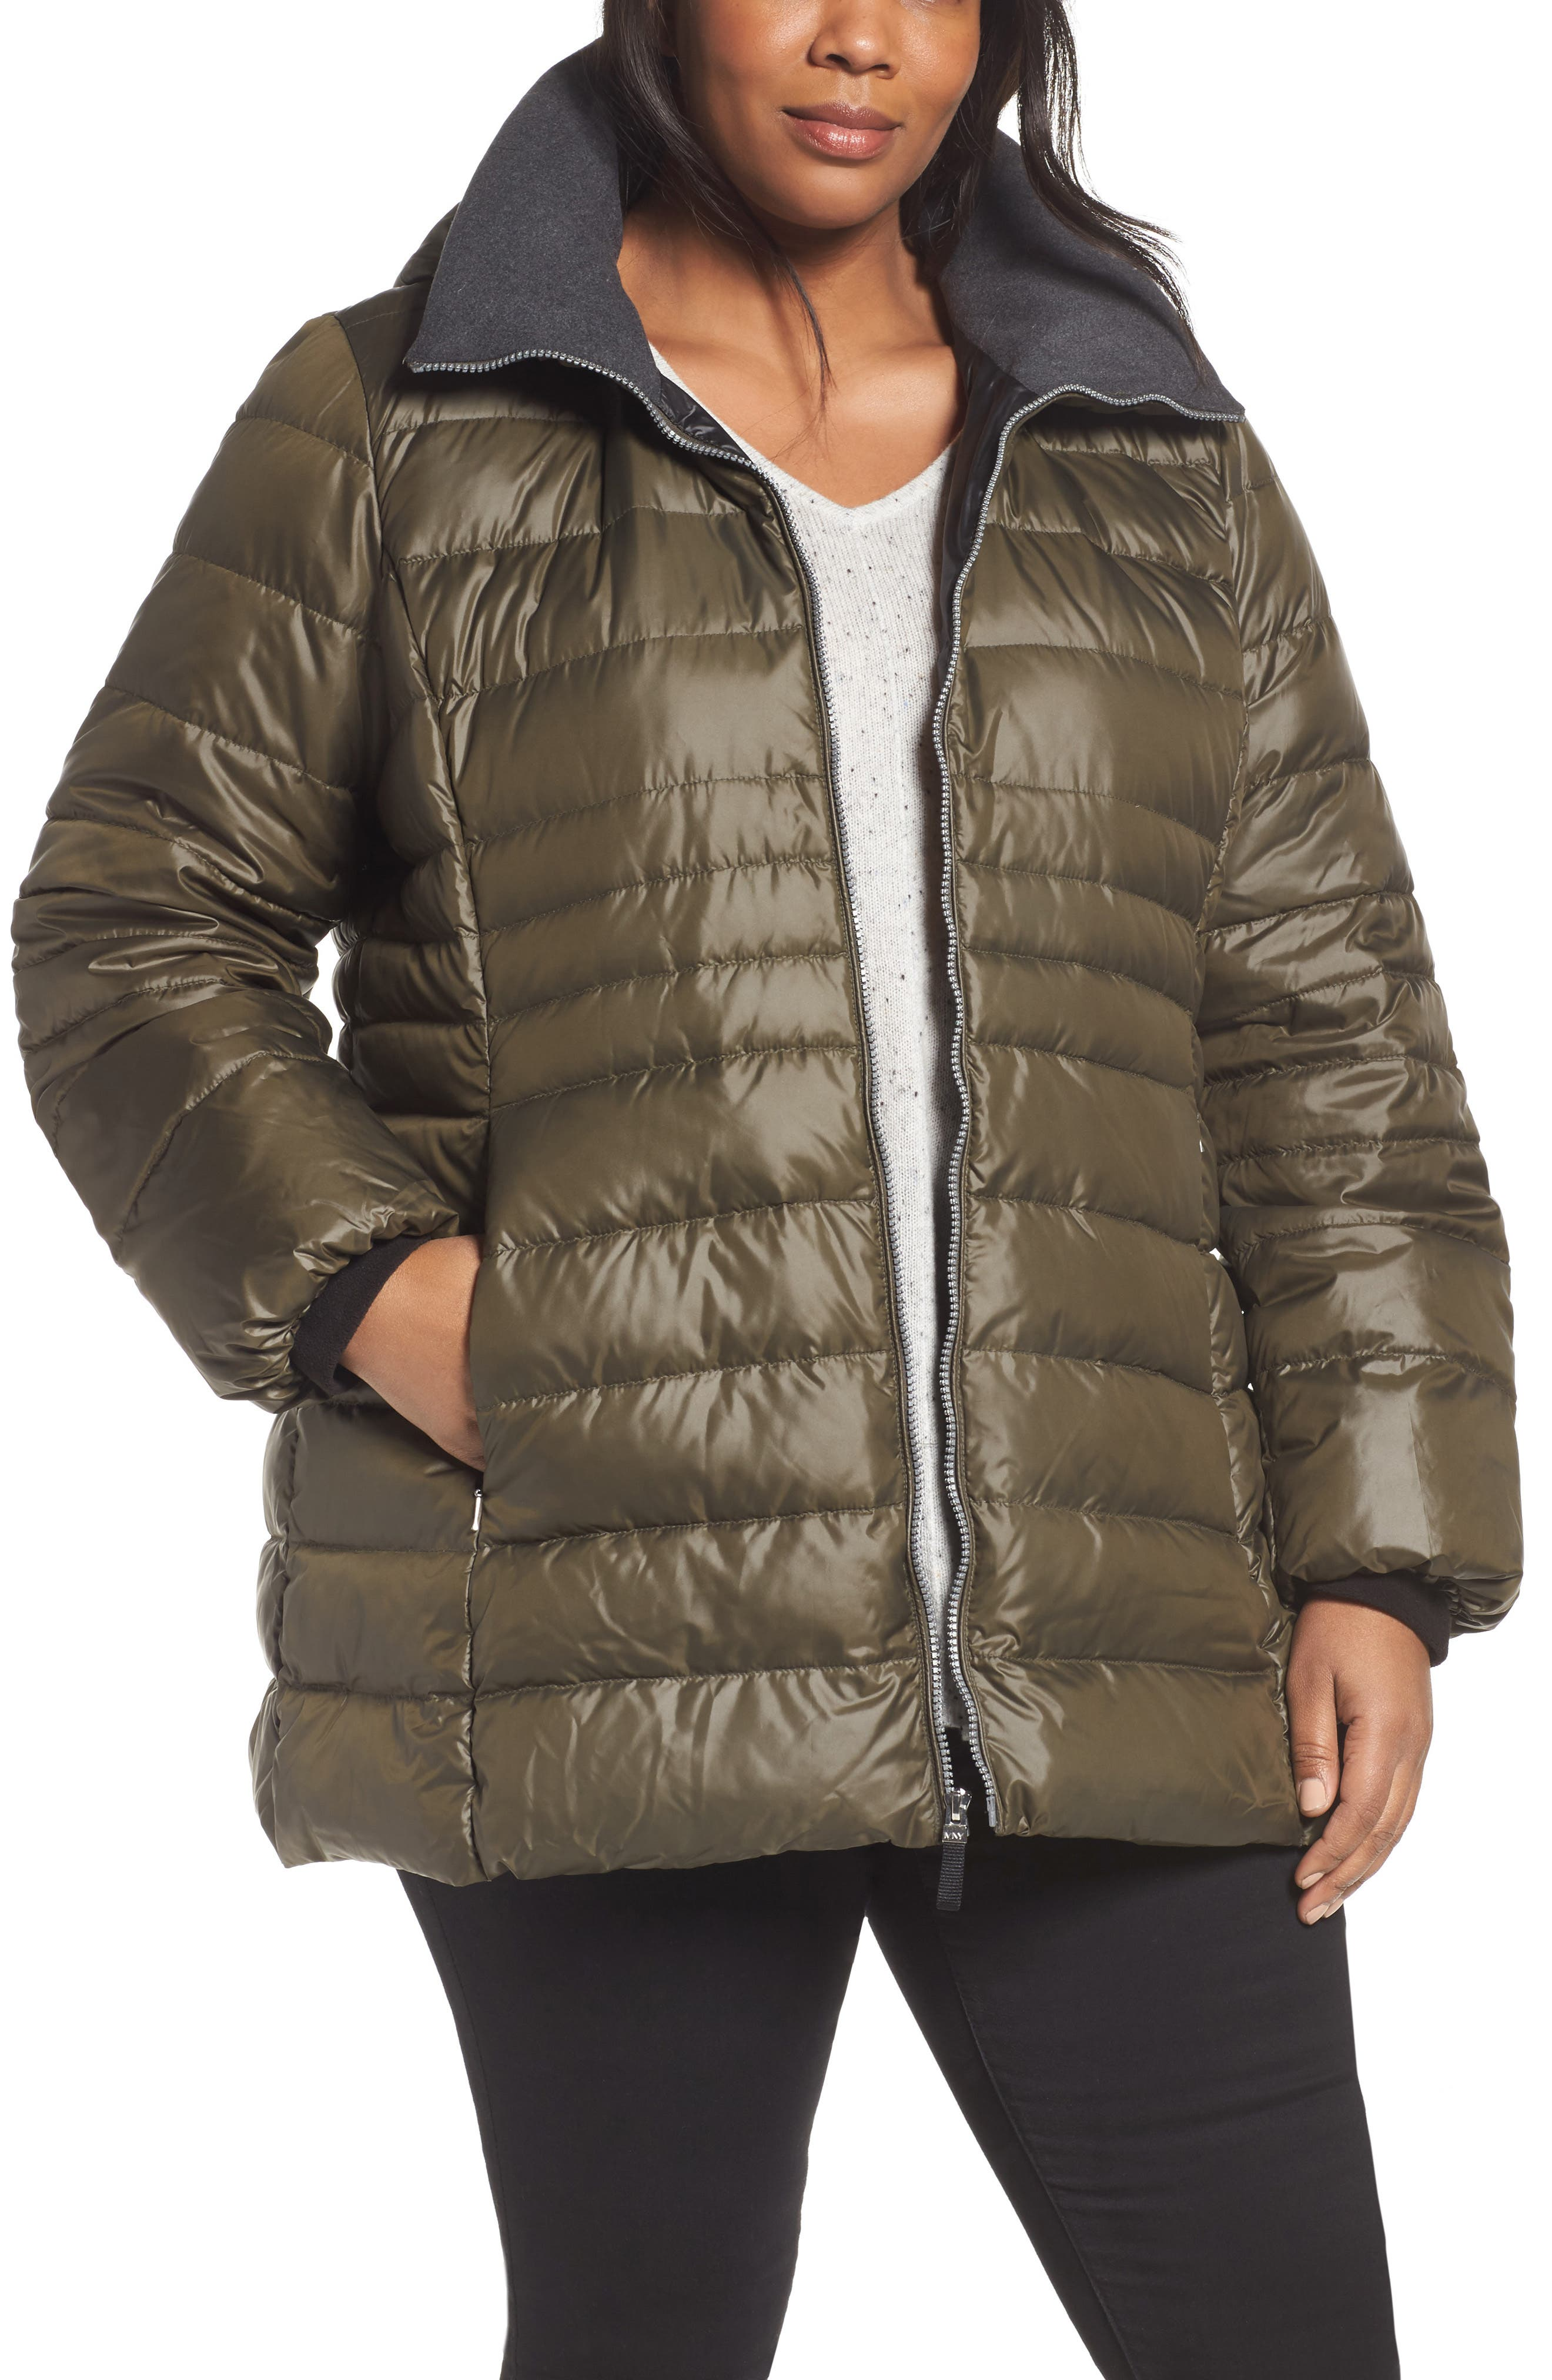 Alternate Image 1 Selected - Andrew Marc Erin Hooded Down Coat (Plus Size)